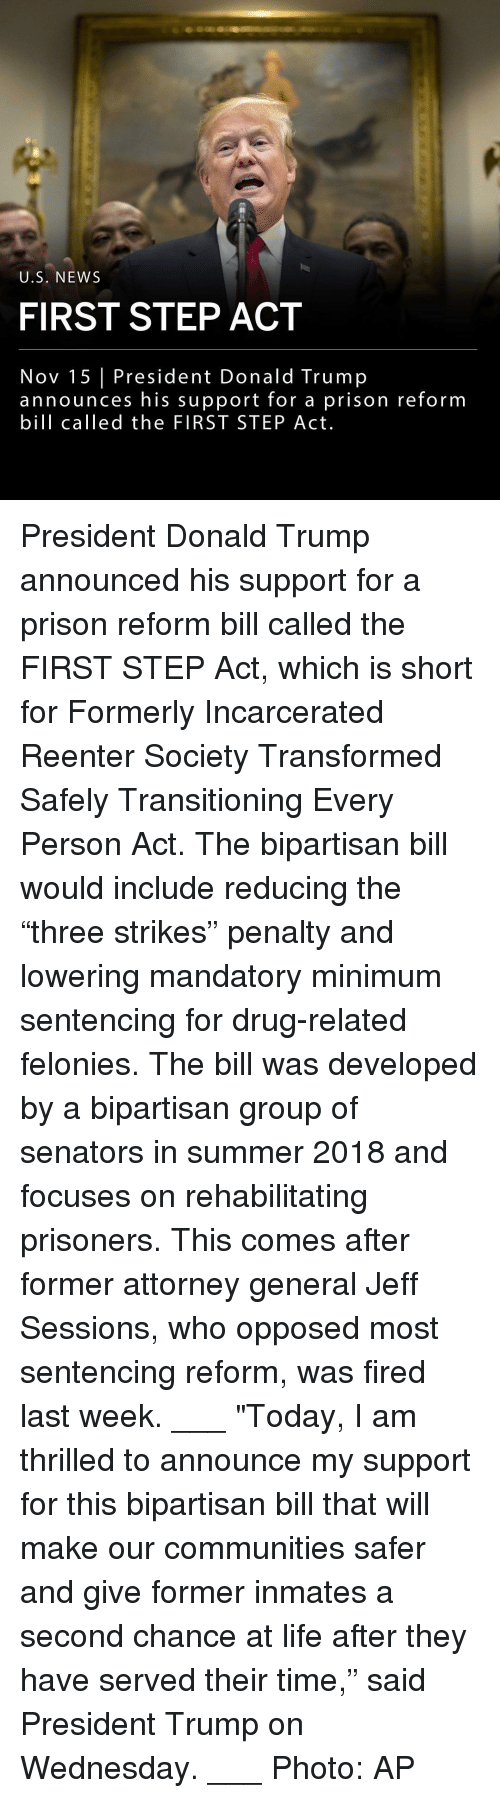 """Donald Trump, Life, and Memes: U.S. NEWS  FIRST STEP ACT  Nov 15 President Donald Trump  announces his support for a prison reform  bill called the FIRST STEP Act. President Donald Trump announced his support for a prison reform bill called the FIRST STEP Act, which is short for Formerly Incarcerated Reenter Society Transformed Safely Transitioning Every Person Act. The bipartisan bill would include reducing the """"three strikes"""" penalty and lowering mandatory minimum sentencing for drug-related felonies. The bill was developed by a bipartisan group of senators in summer 2018 and focuses on rehabilitating prisoners. This comes after former attorney general Jeff Sessions, who opposed most sentencing reform, was fired last week. ___ """"Today, I am thrilled to announce my support for this bipartisan bill that will make our communities safer and give former inmates a second chance at life after they have served their time,"""" said President Trump on Wednesday. ___ Photo: AP"""